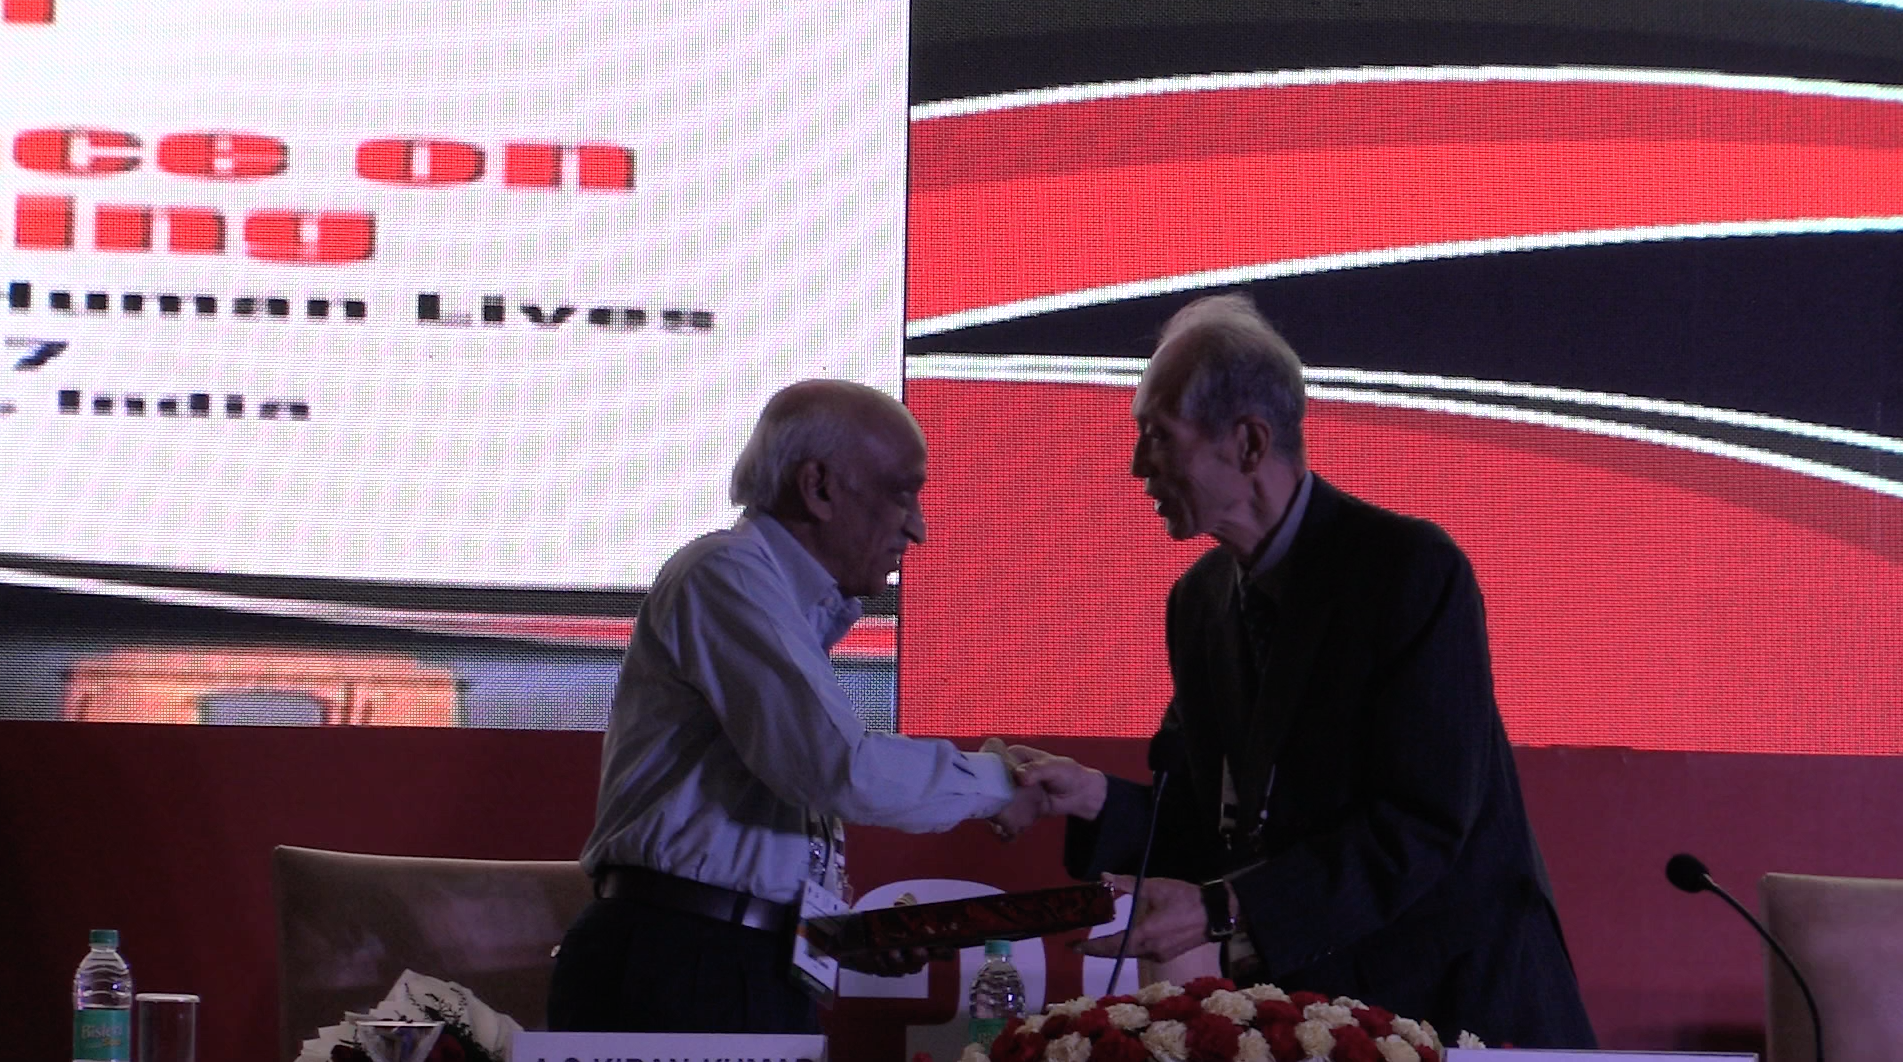 ISRO chief Kiran Kumar with ACRS founder and eminent scientist Dr Shunji Murai, at the 38th Asian Remote Sensing Conference, being held in New Delhi.